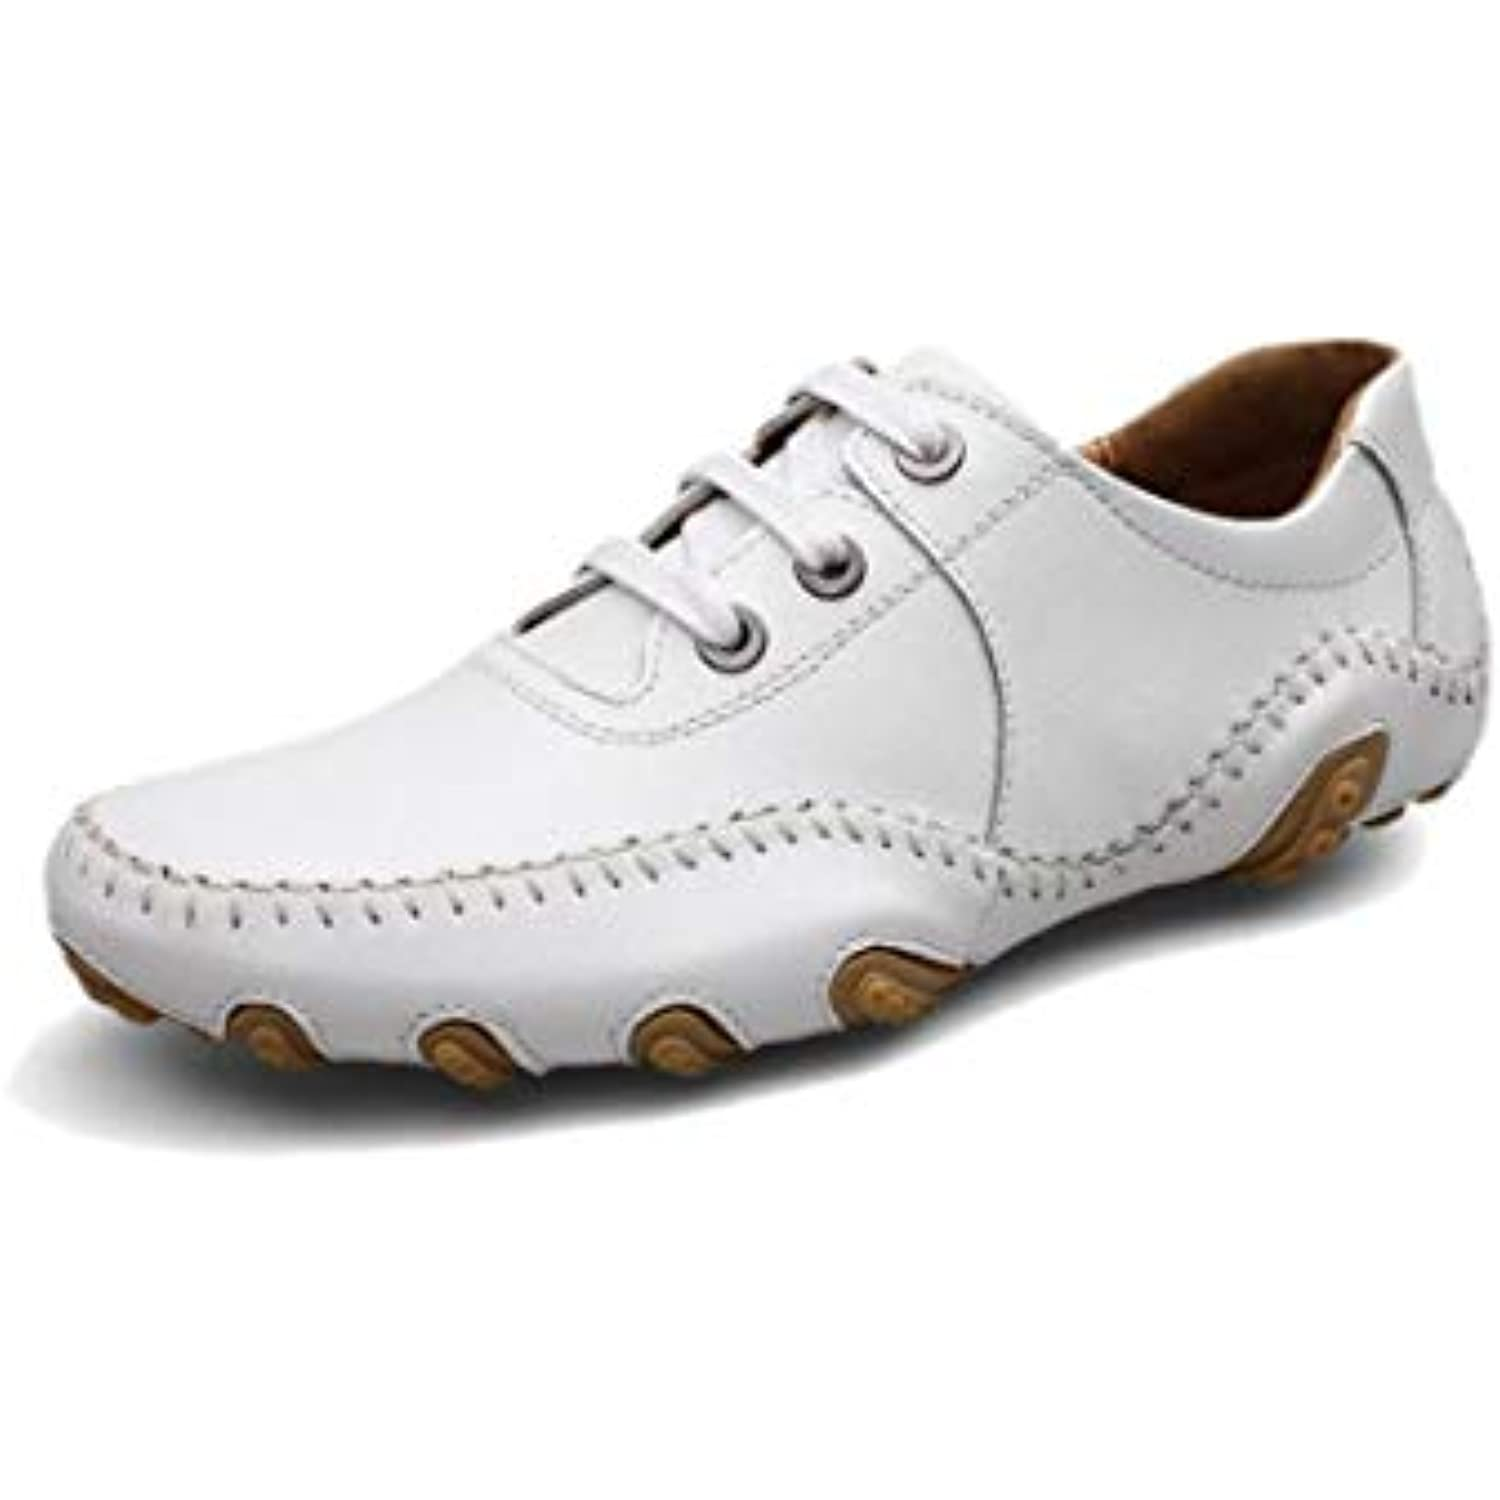 Chaussures Cuir Chaussures Cuir Hommes Occasionnels Chaussures Chaussures Chaussures Business Ruban Doux Rond Pointu Printemps Automne... - B07HVKQRQ3 - 0bbb11